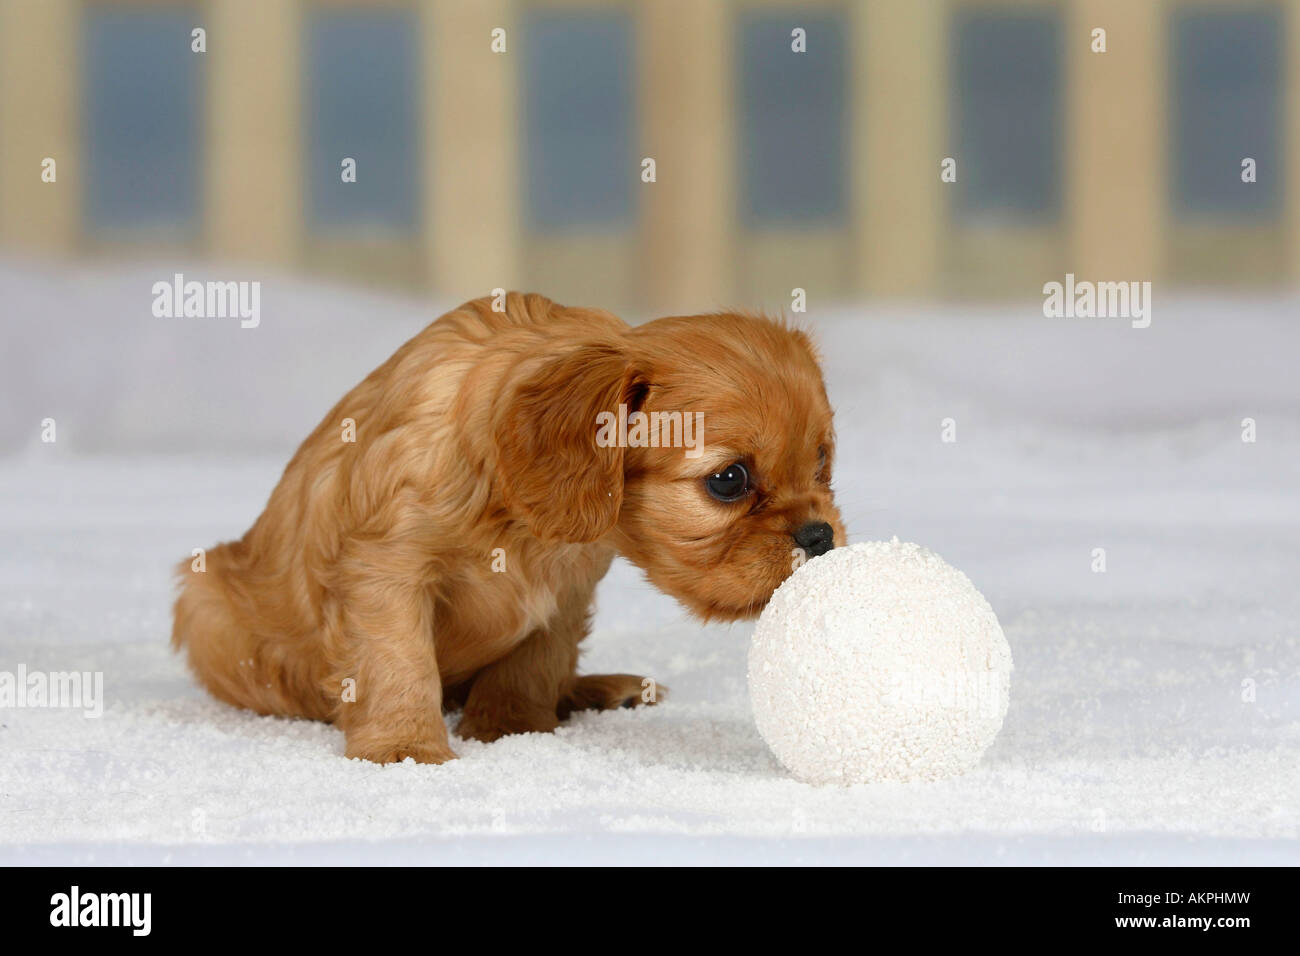 cavalier king charles spaniel puppy ruby 6 weeks sniffing on